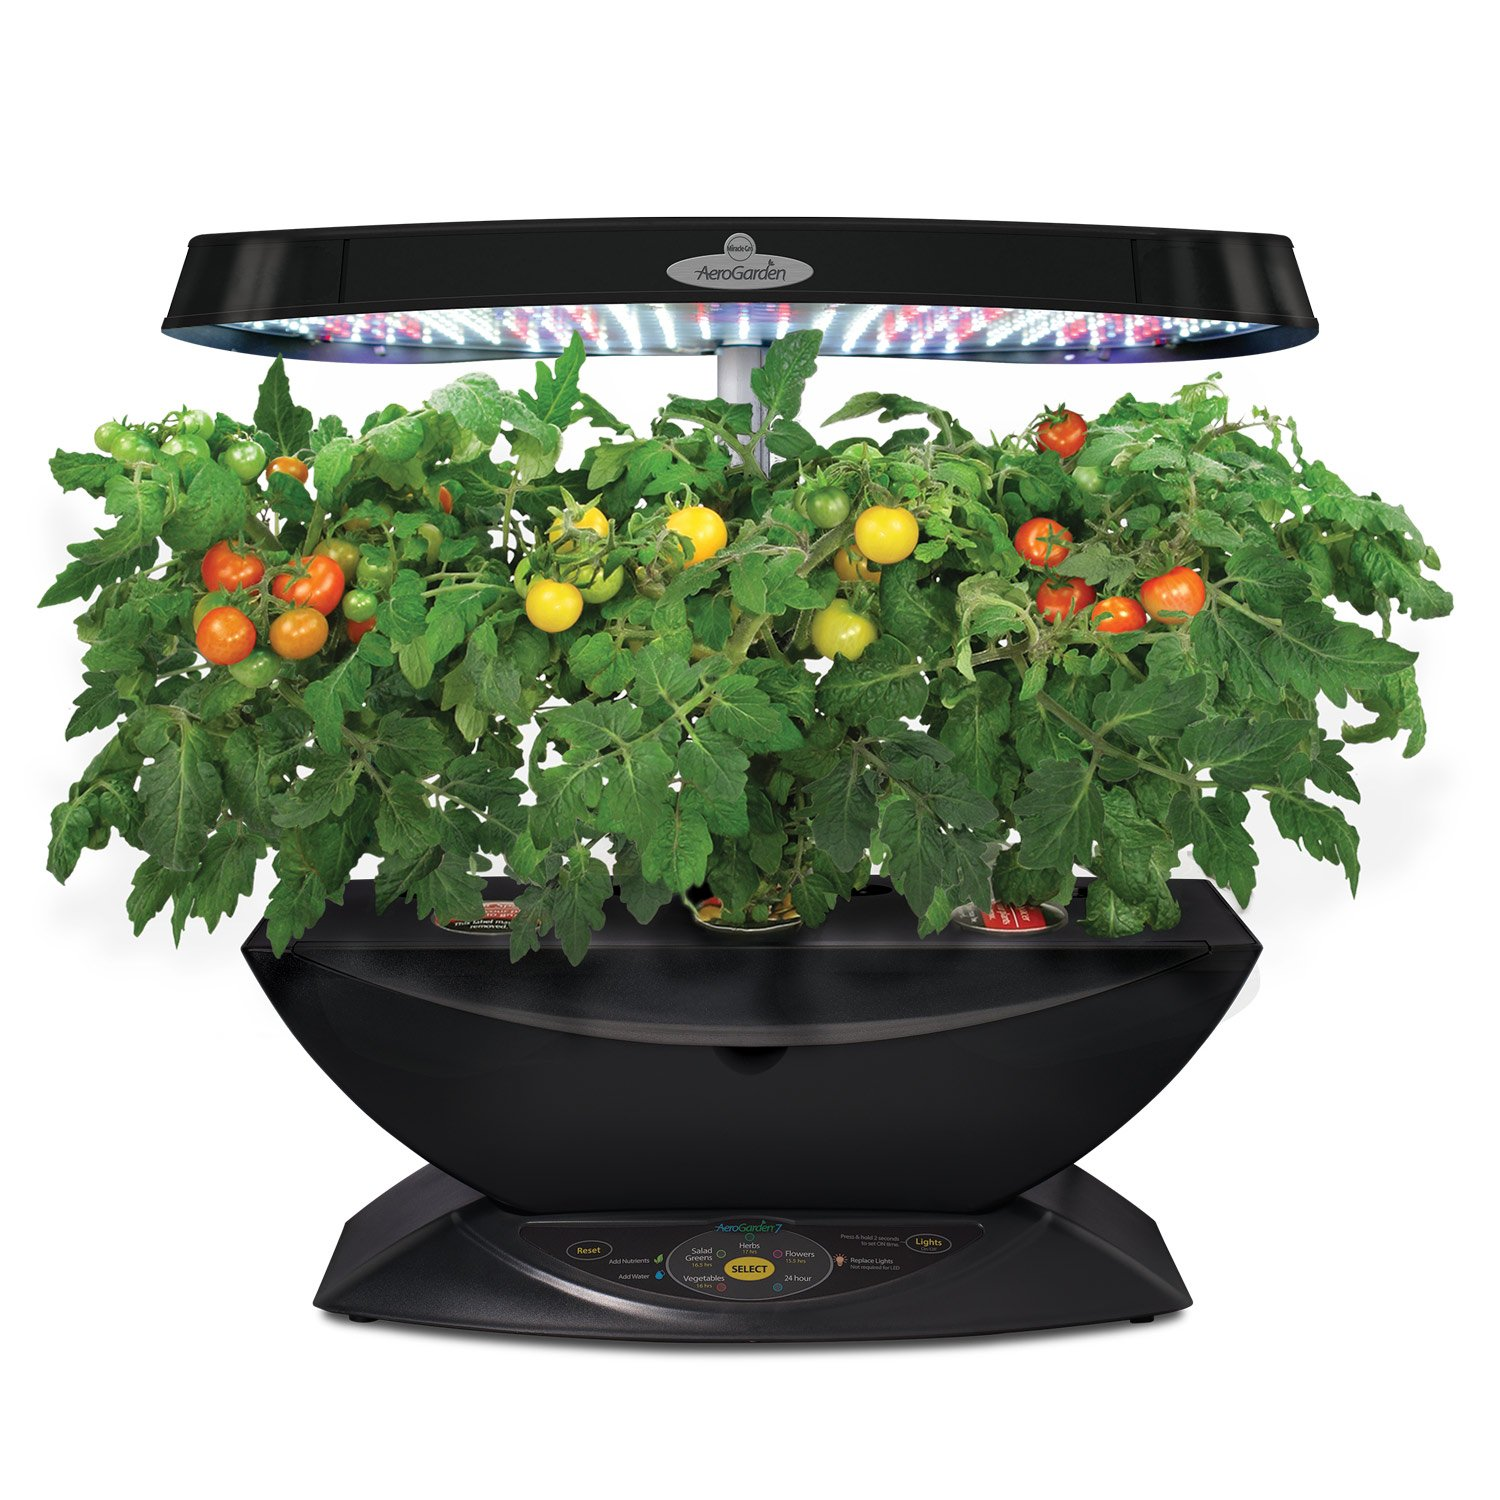 miracle gro aerogarden 7 pod led indoor garden with gourmet herb seed kit new ebay. Black Bedroom Furniture Sets. Home Design Ideas